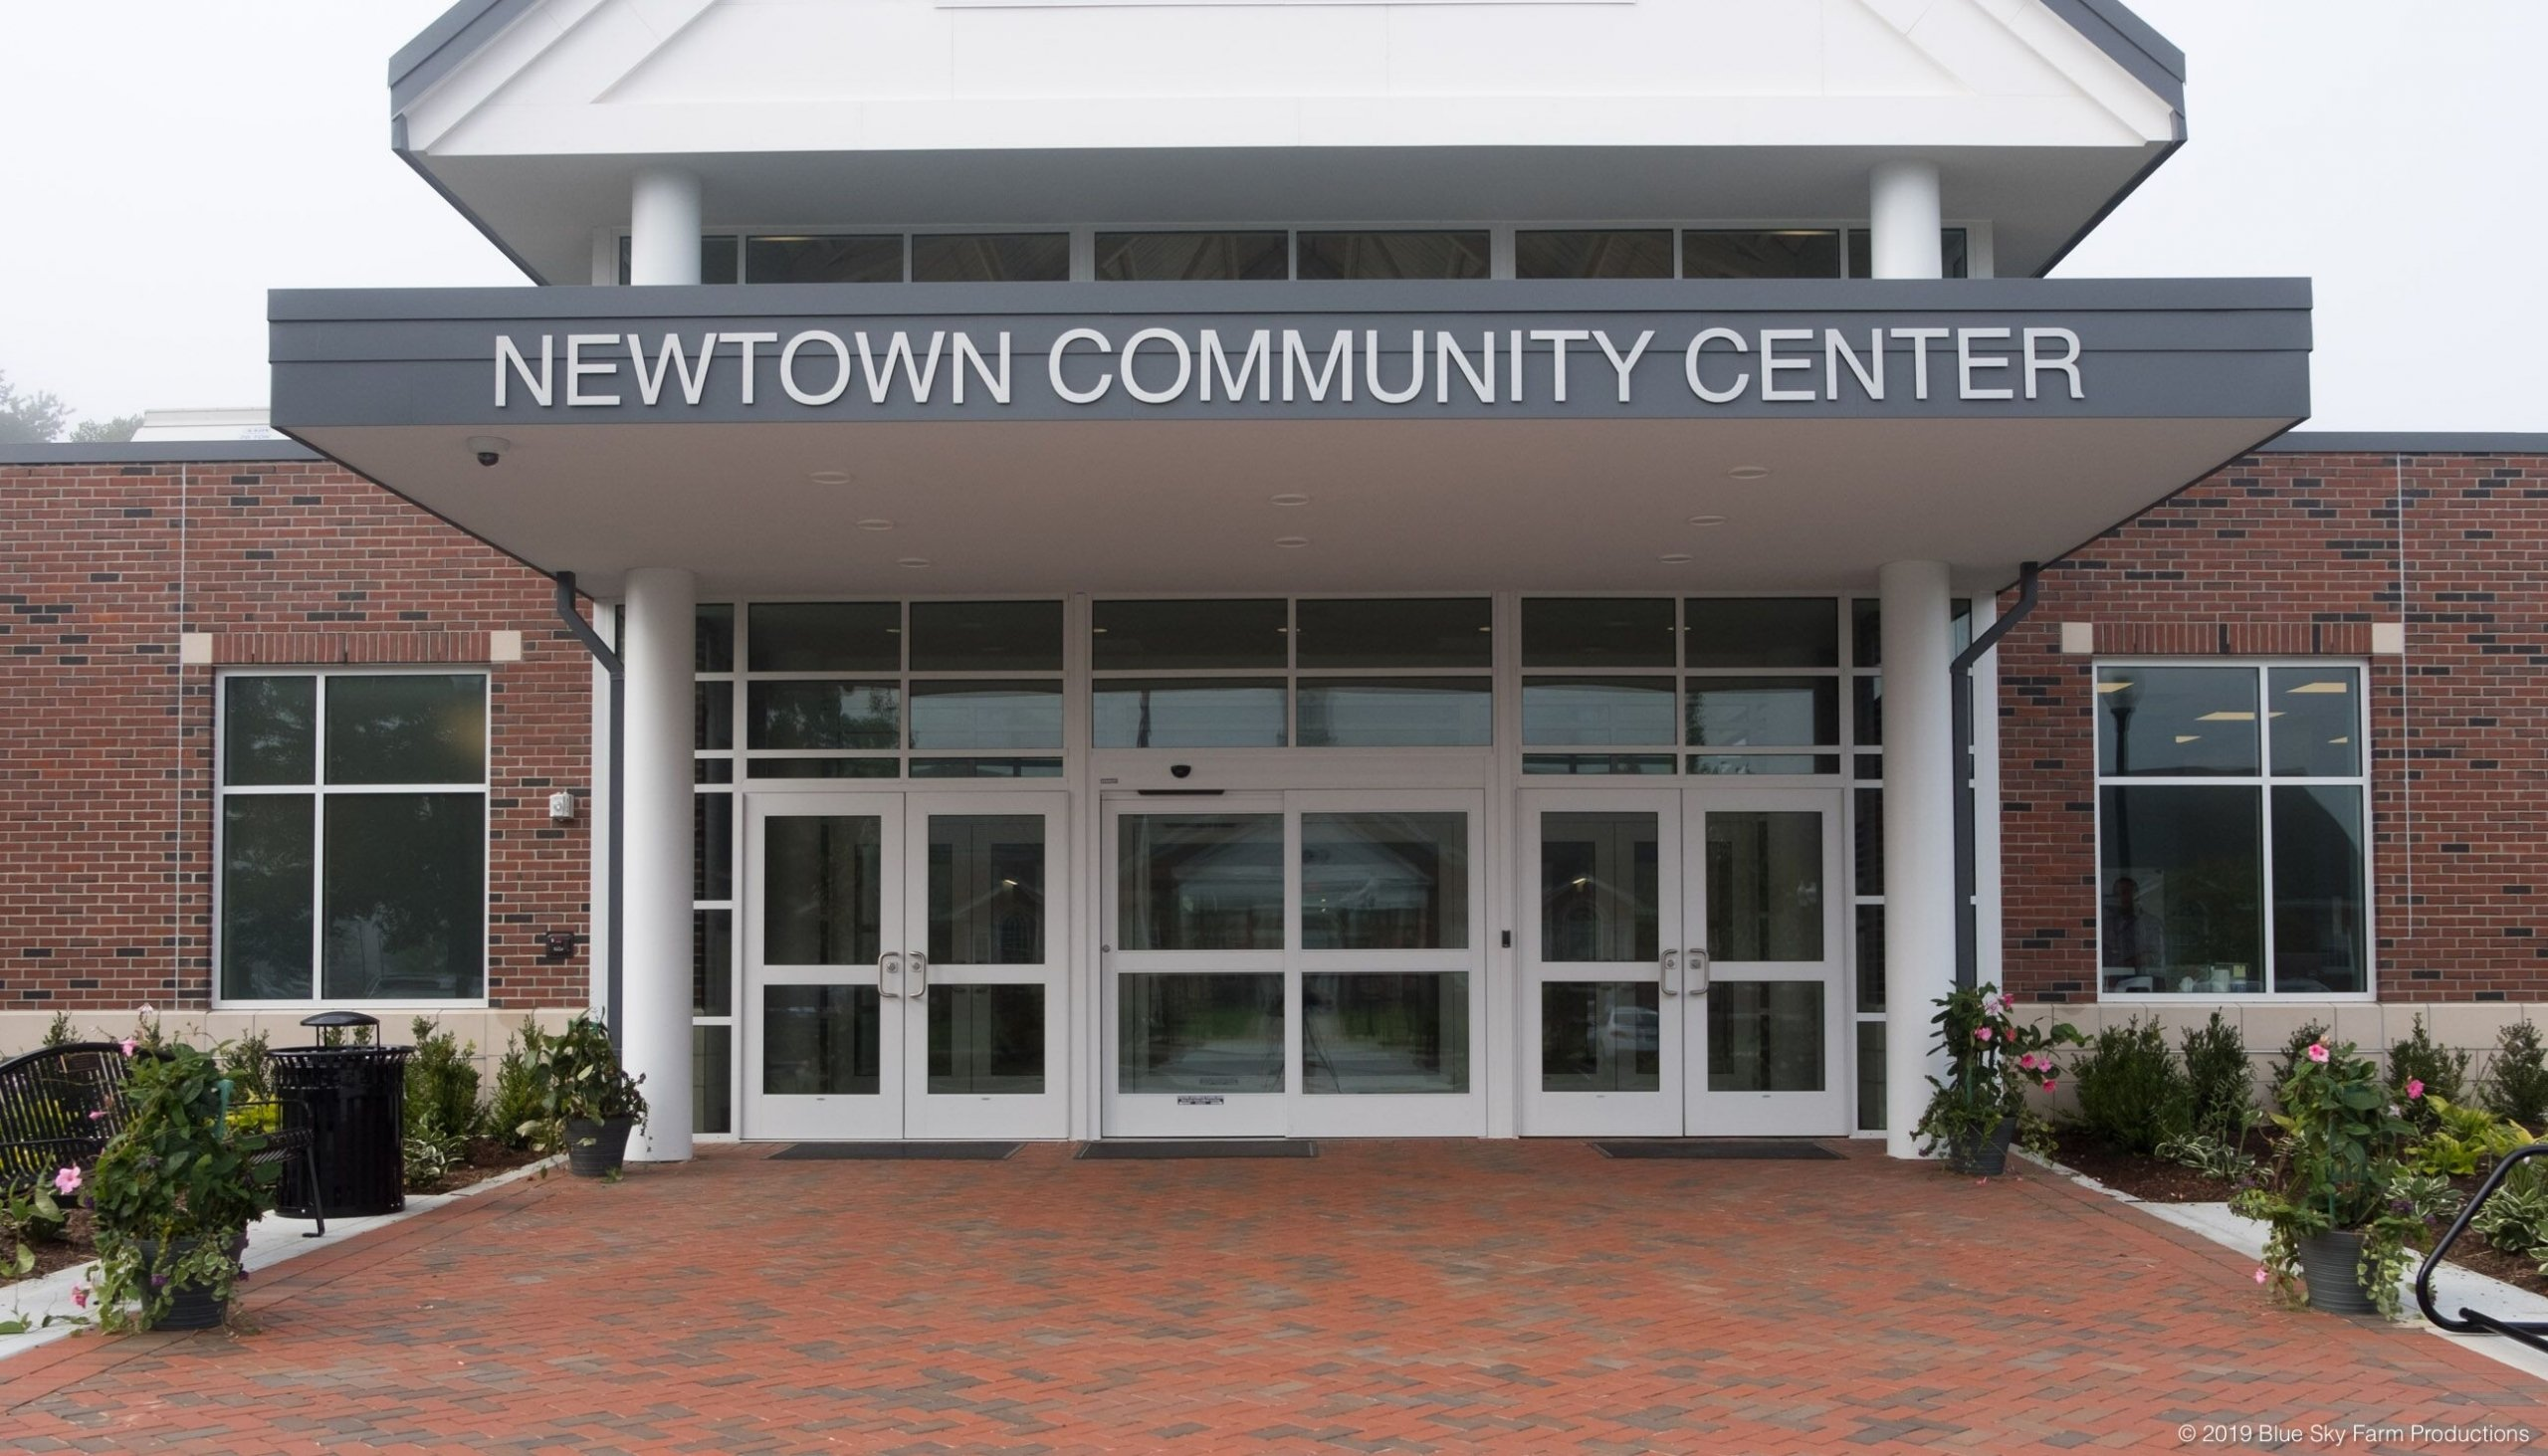 Newtown Community Center